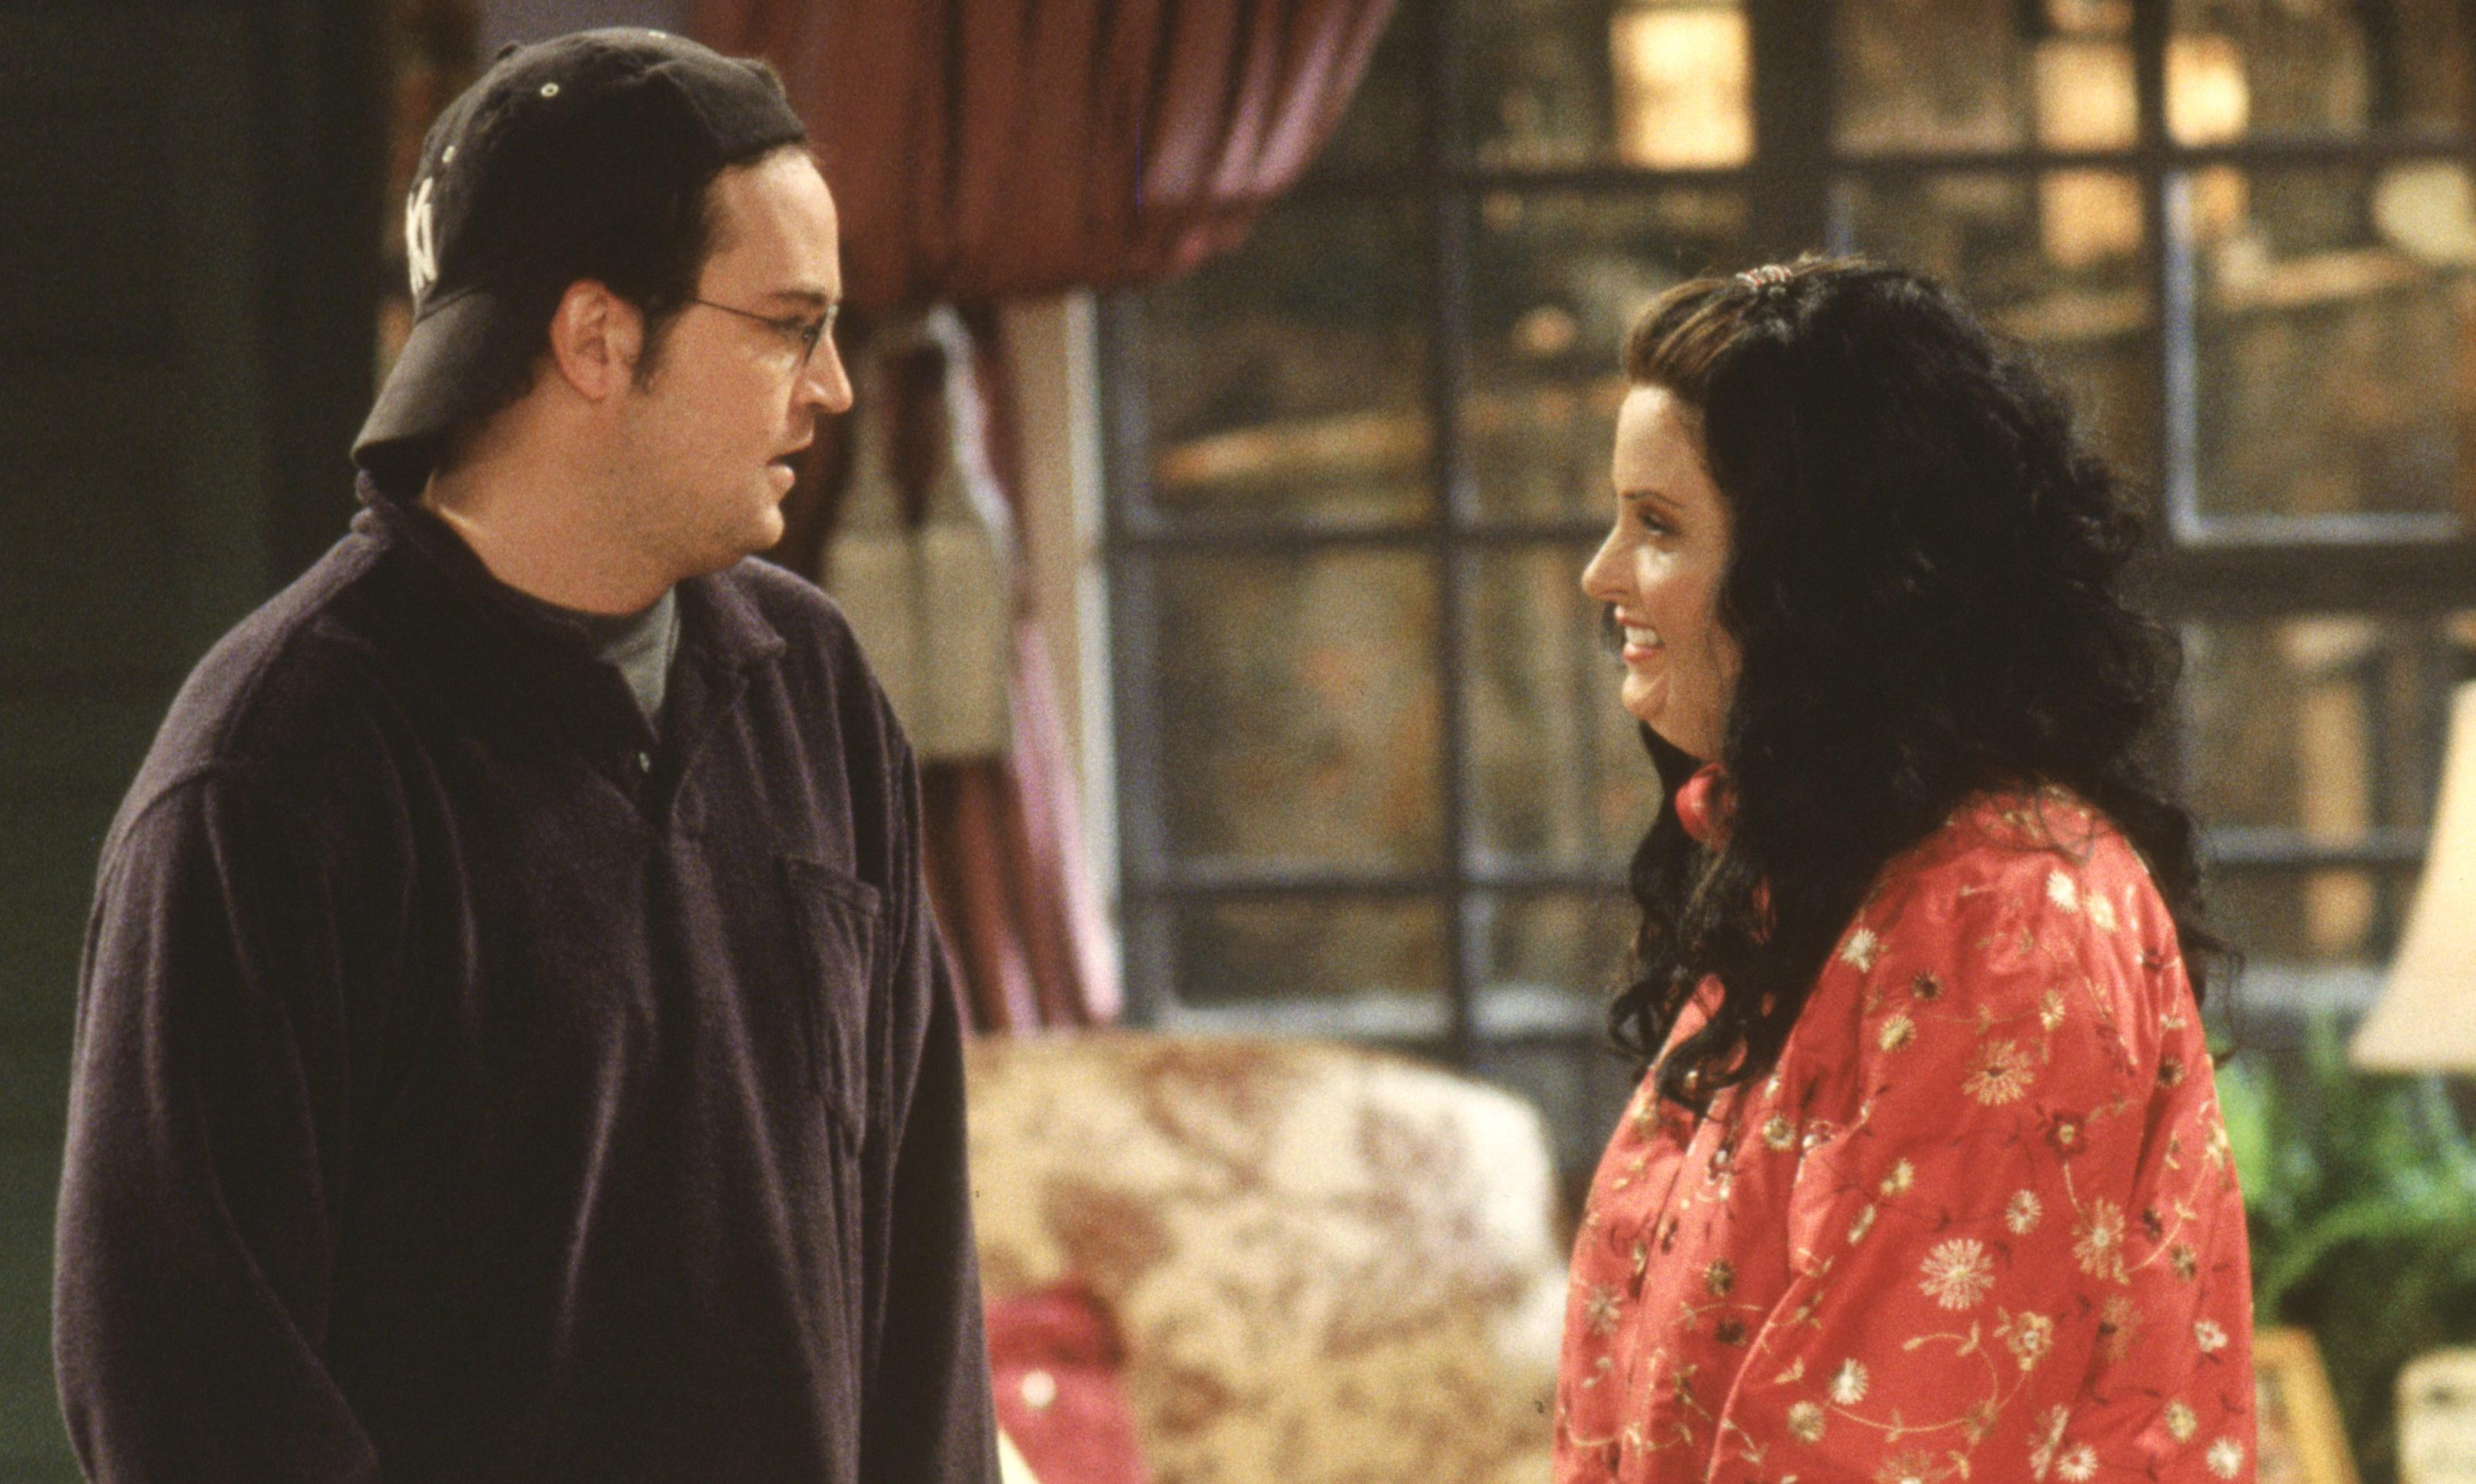 The One where Friends is Analysed to Death is not an episode we need to see